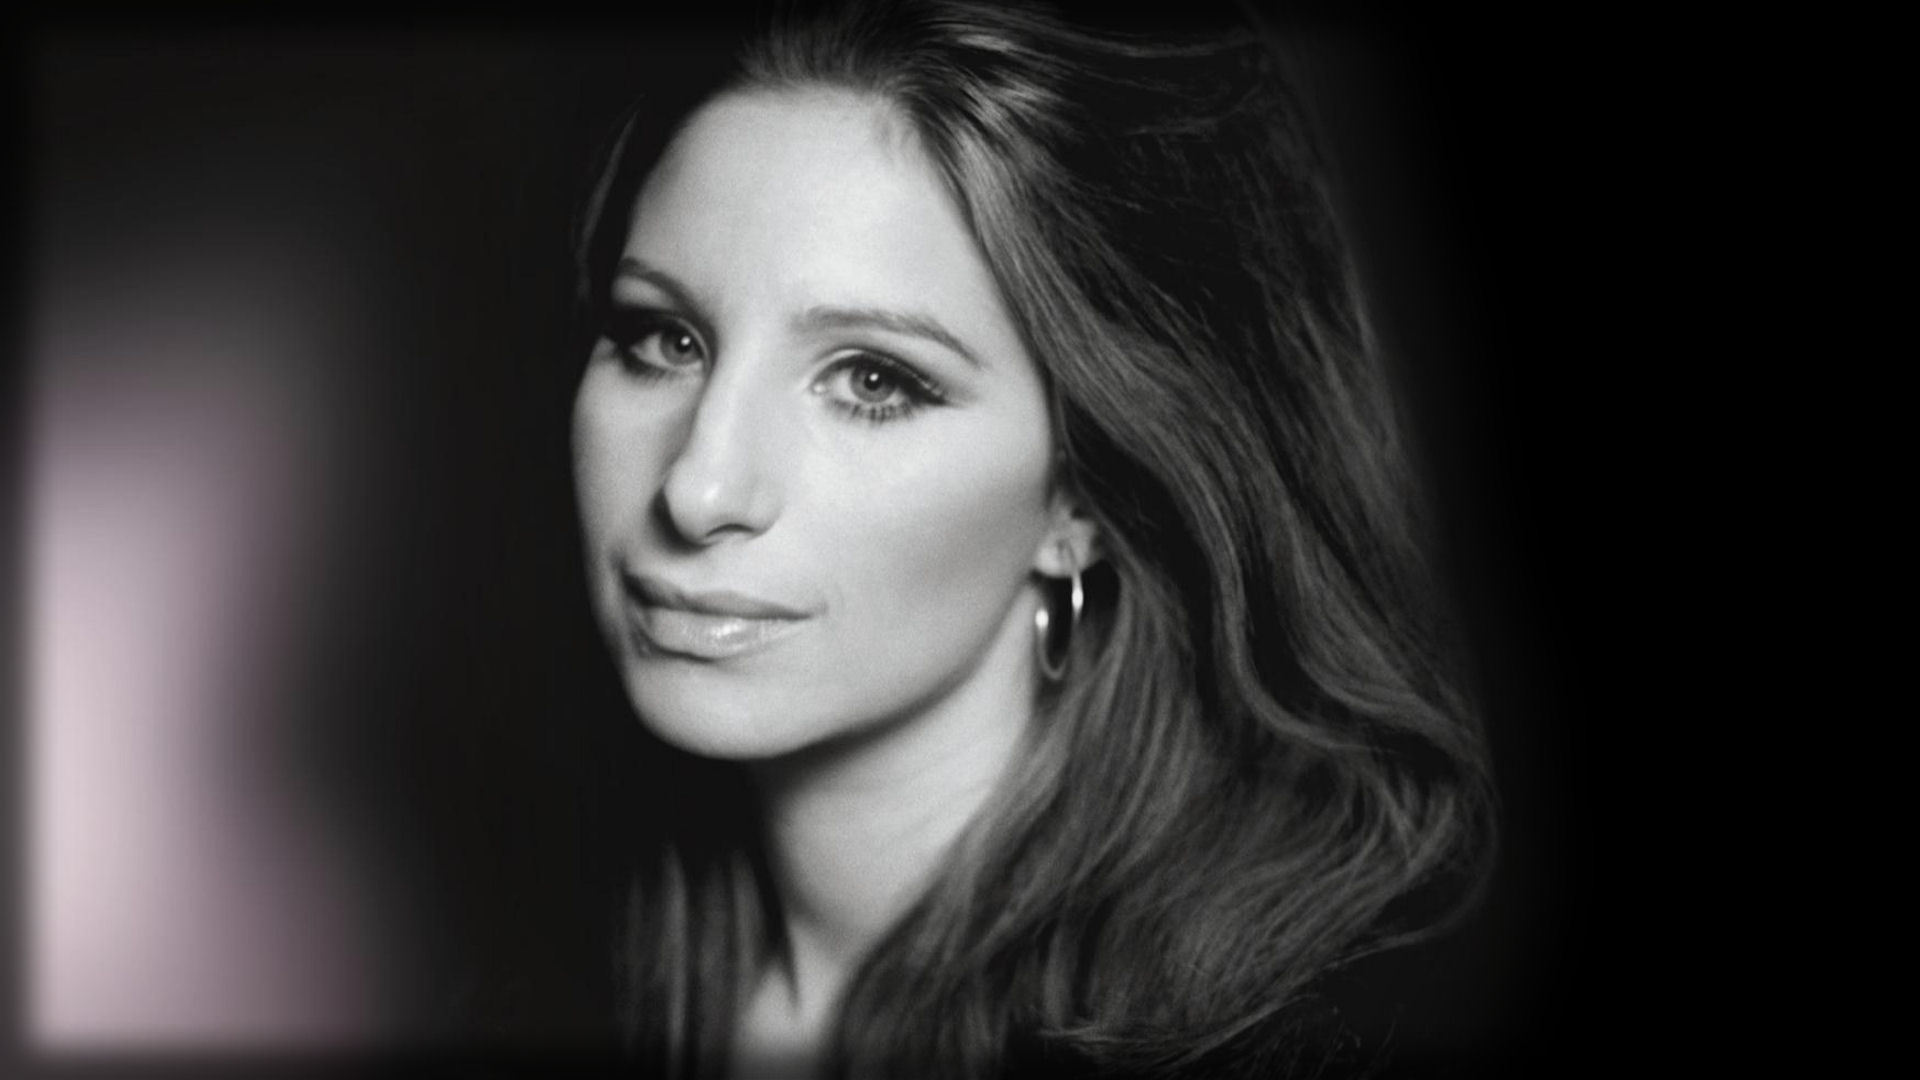 barbra streisand - photo #42